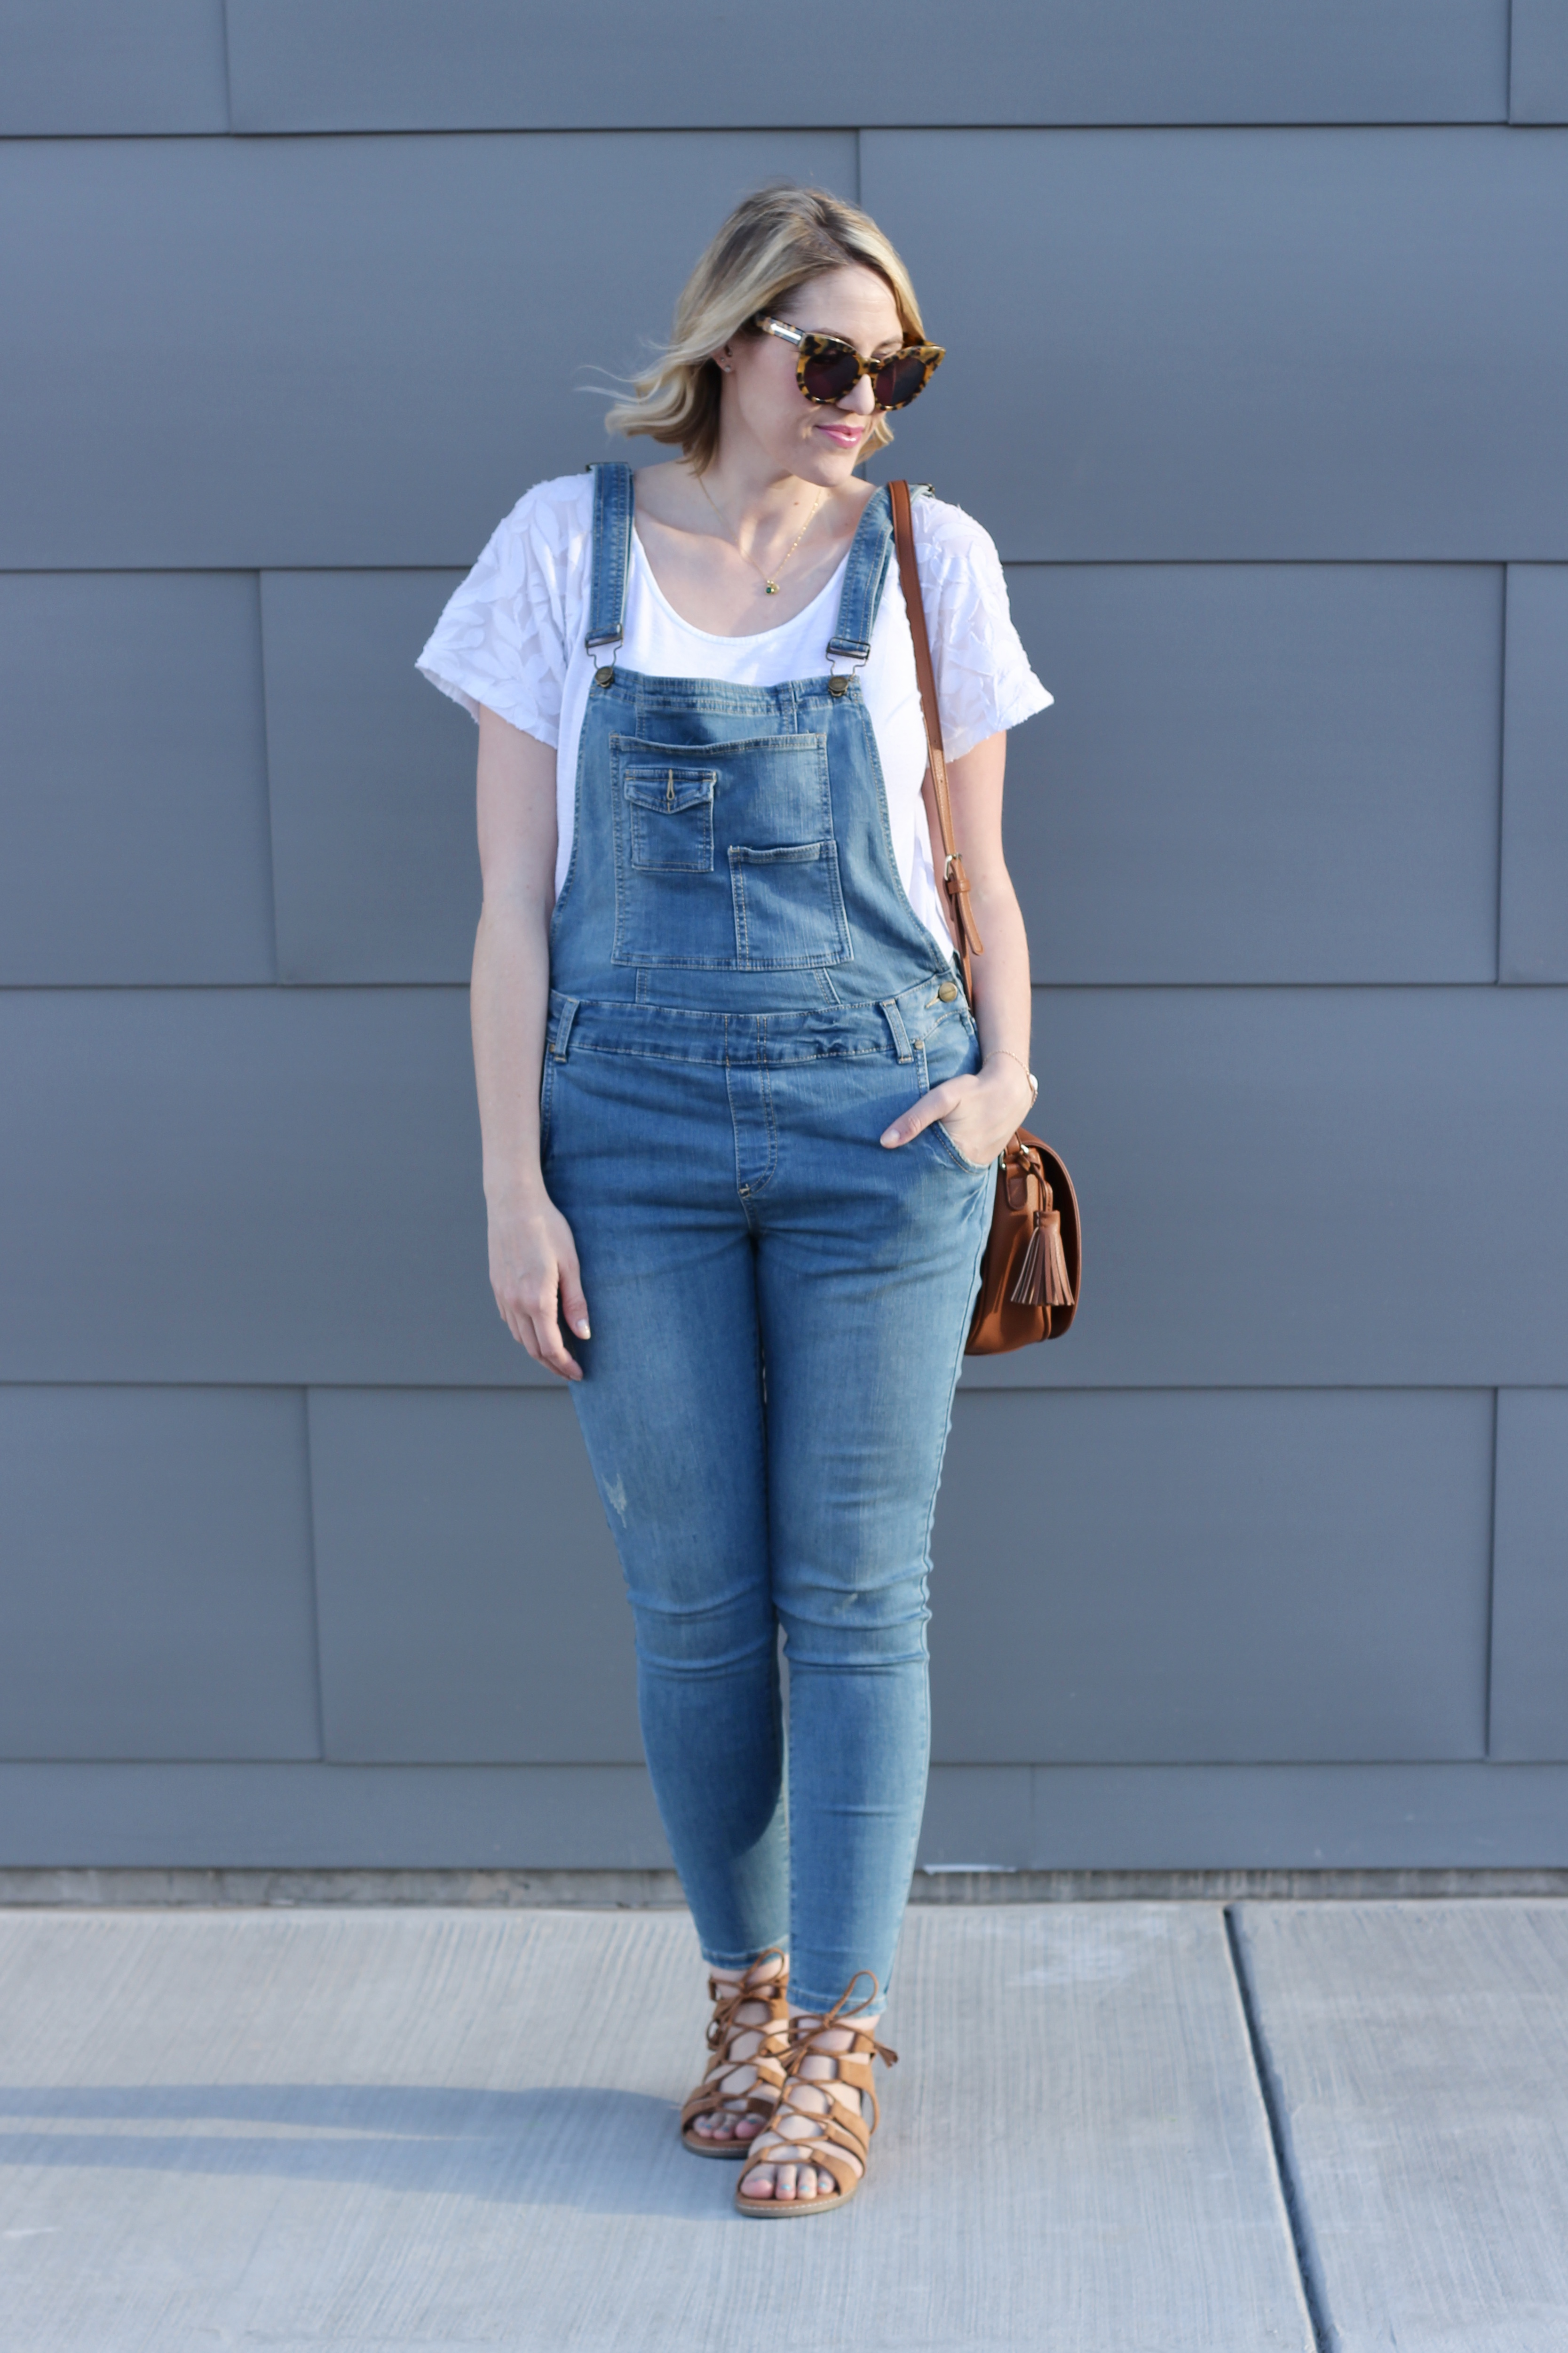 spring fashion featuring denim overalls